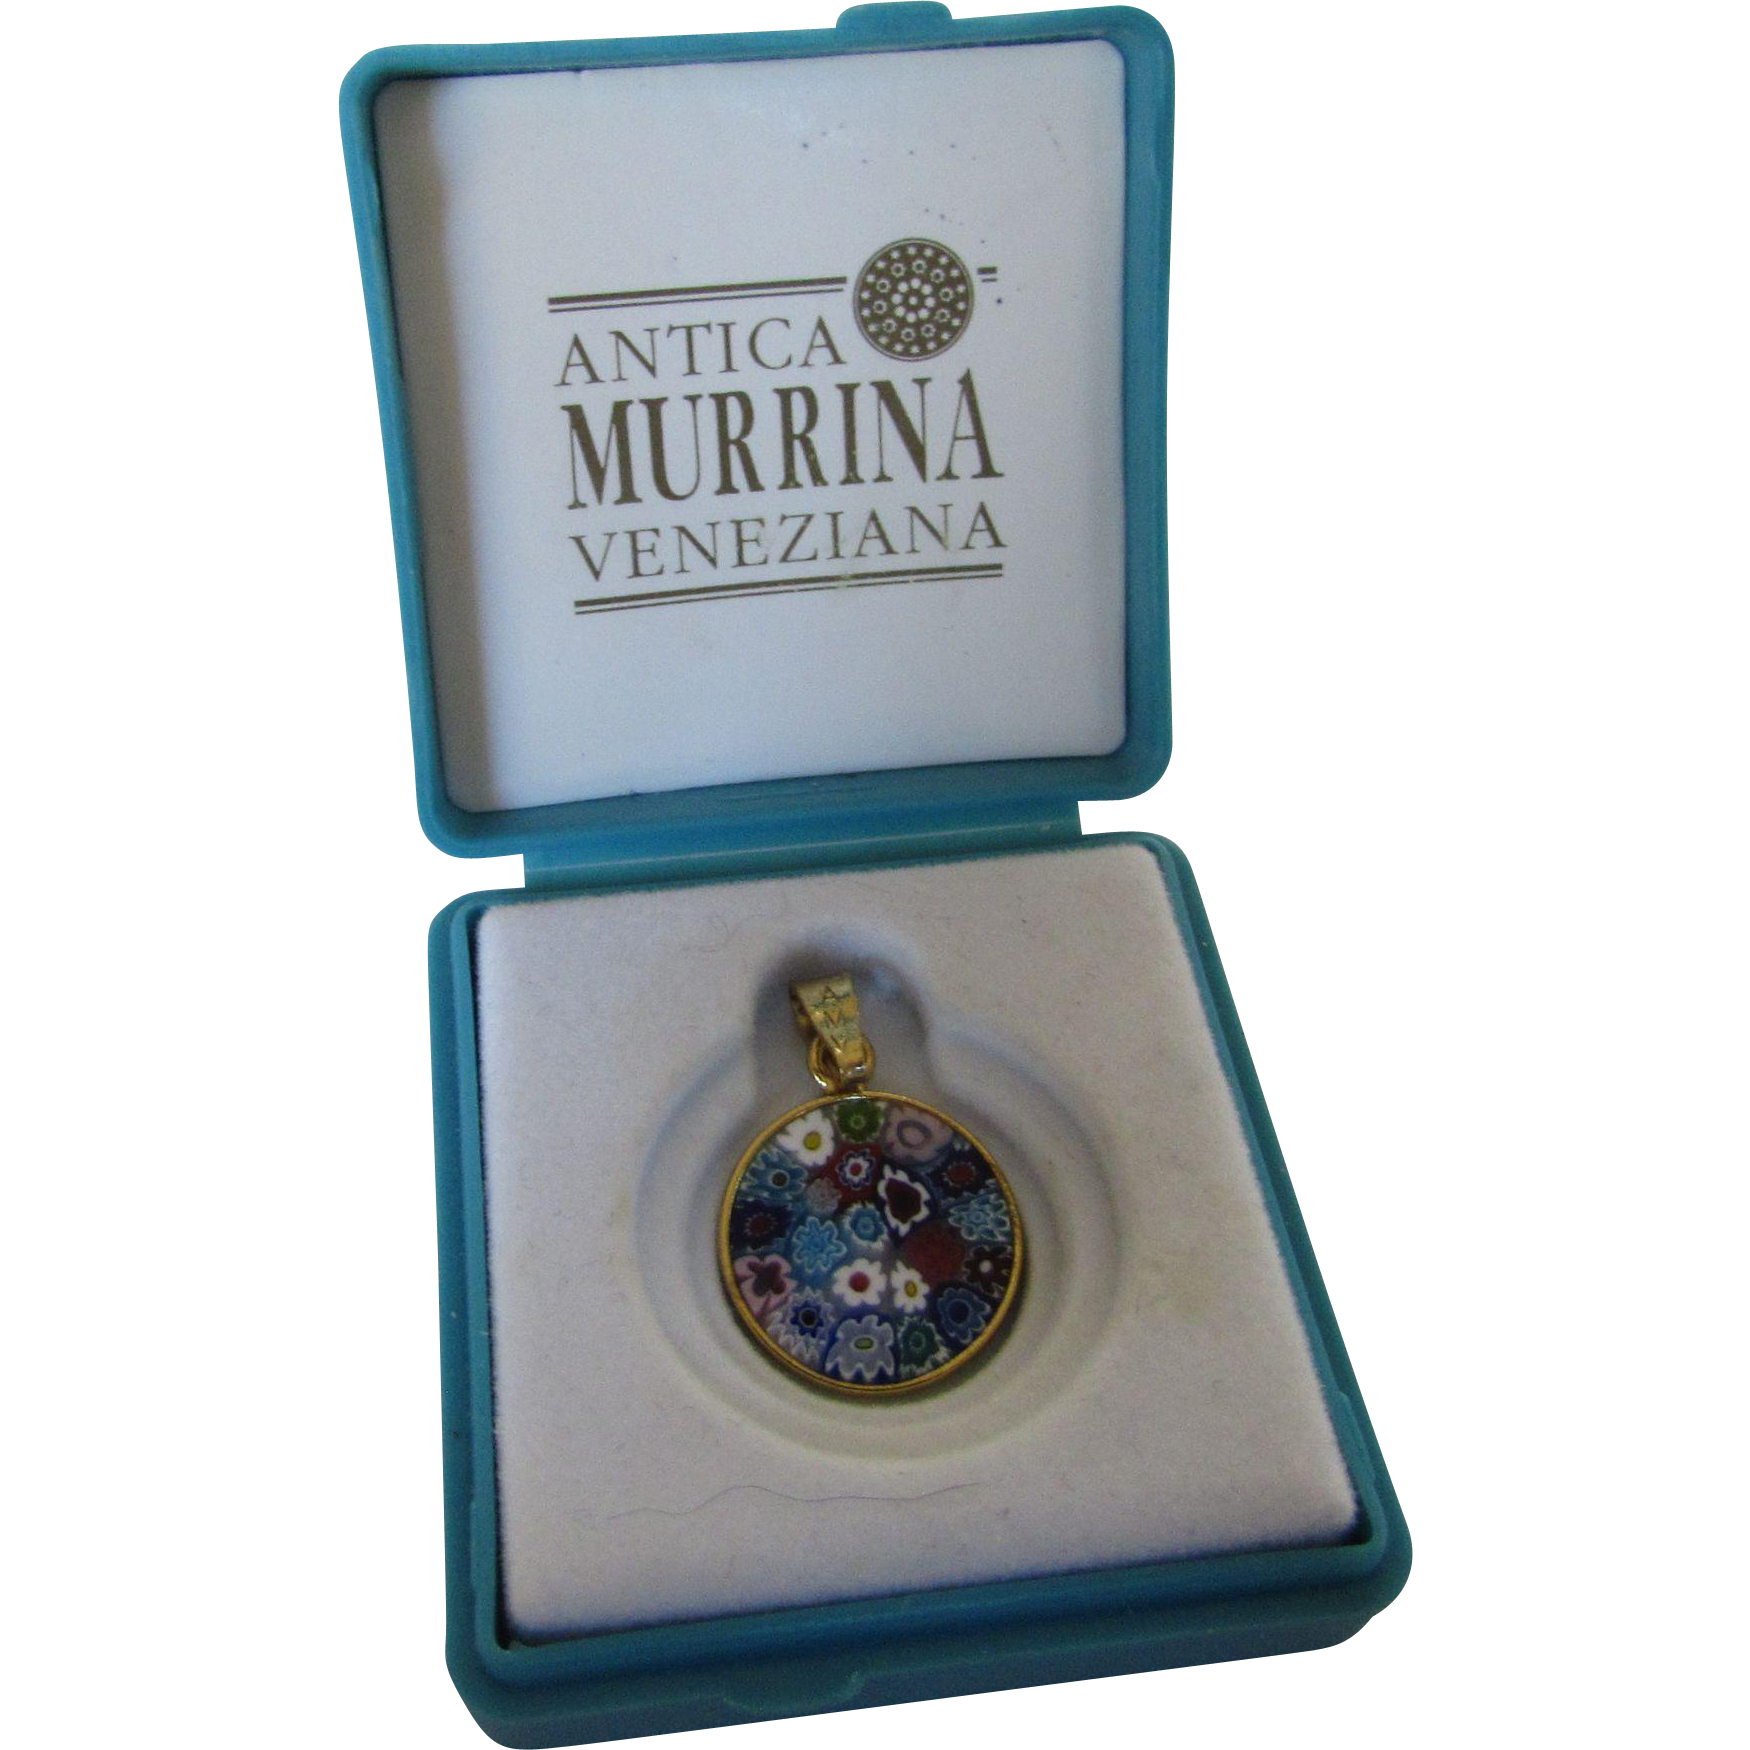 Vintage tiny murano millefiori pendant in gold wash made by antica vintage tiny murano millefiori pendant in gold wash made by antica style and grace ruby lane mozeypictures Choice Image